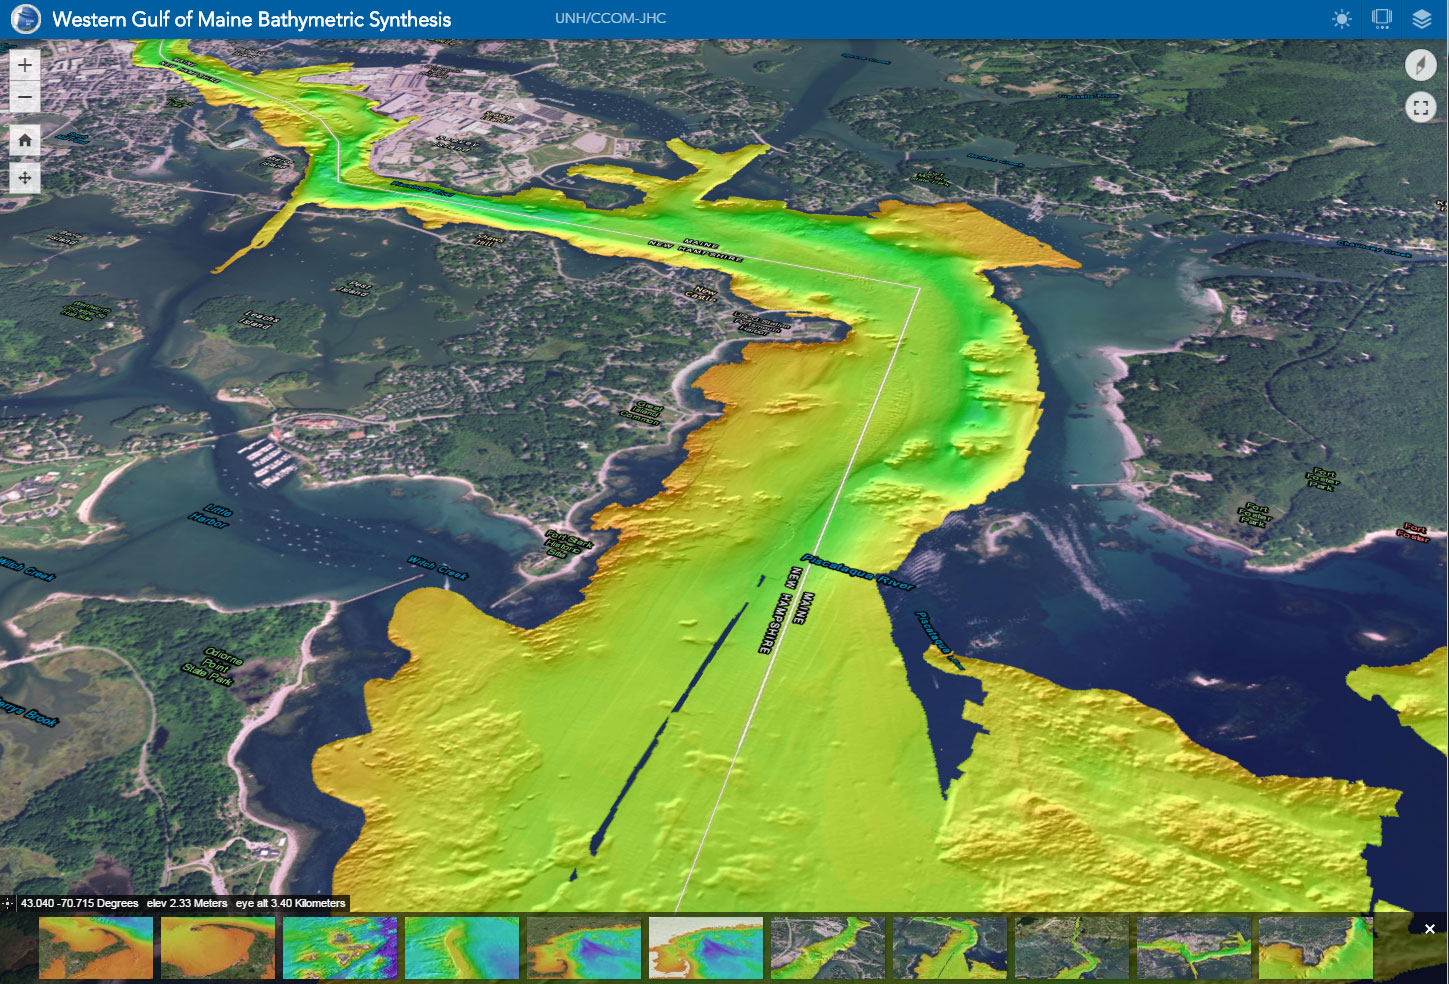 Figure 3. Three dimensional GIS browser interface to the WGOM high resolution and regional bathymetry data.